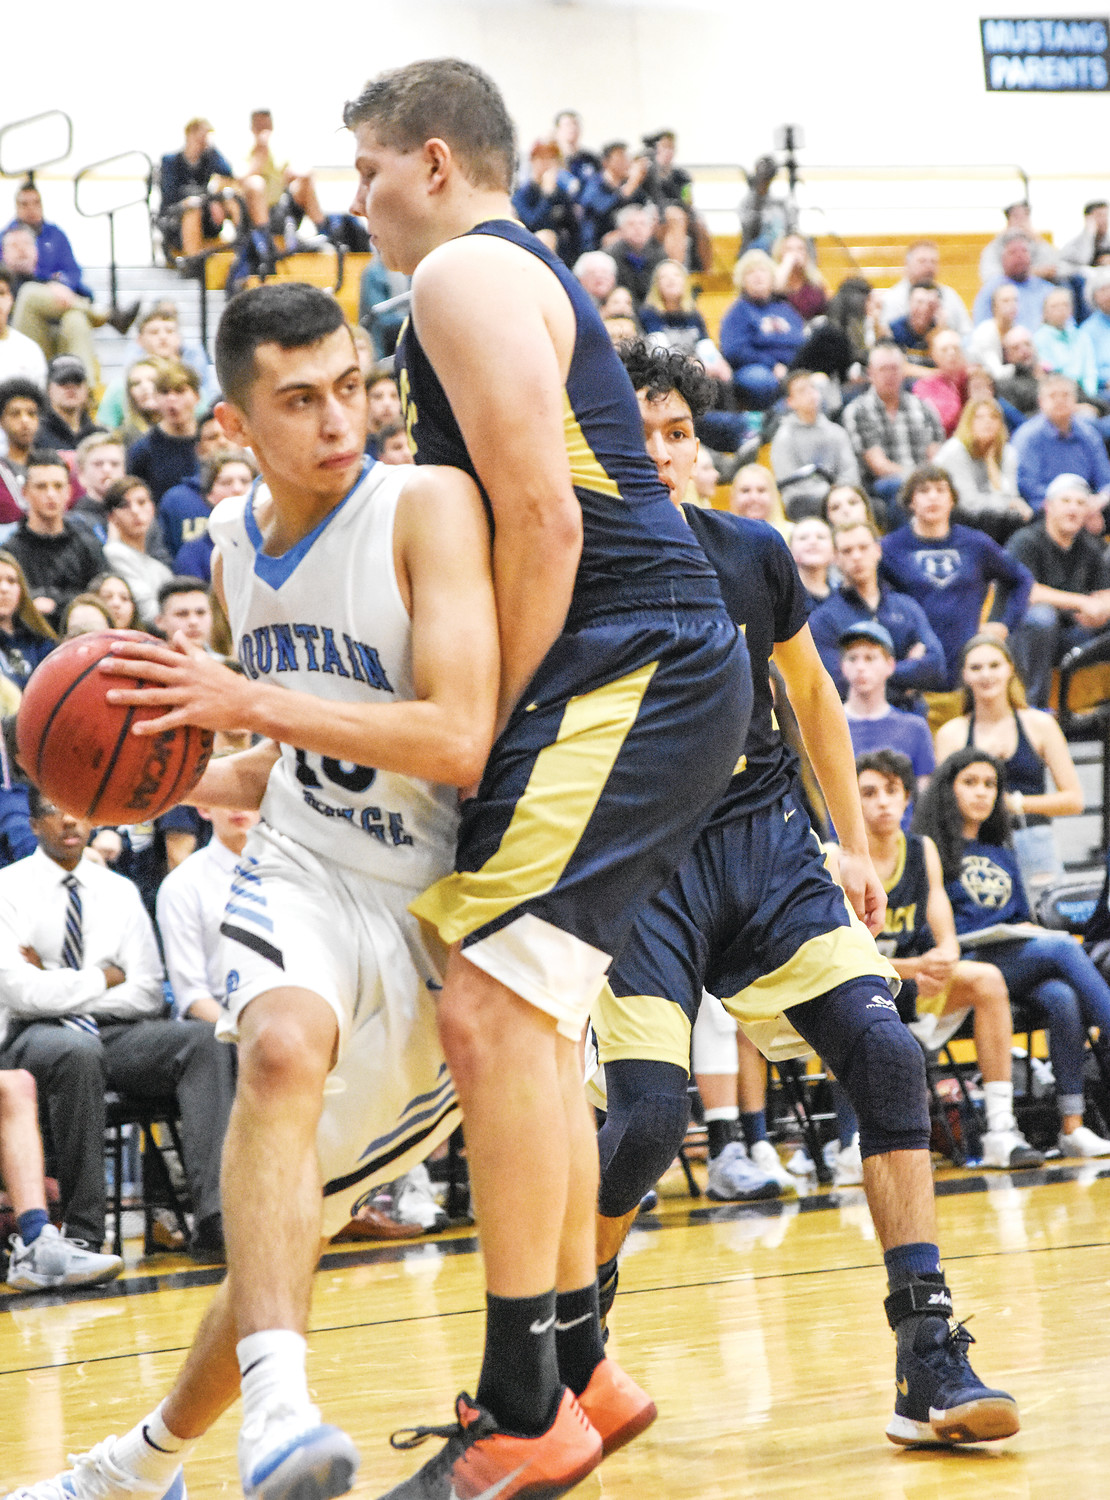 Legacy's Austin Mullins, right, defends Mountain Range guard Brandon Romero, during the season opener for both teams, Wednesday, November 29, 2017, at Mountain Range High School in Westminster. Mountain Range came back from a 17-point halftime deficit, only to lose in overtime, 72-70.